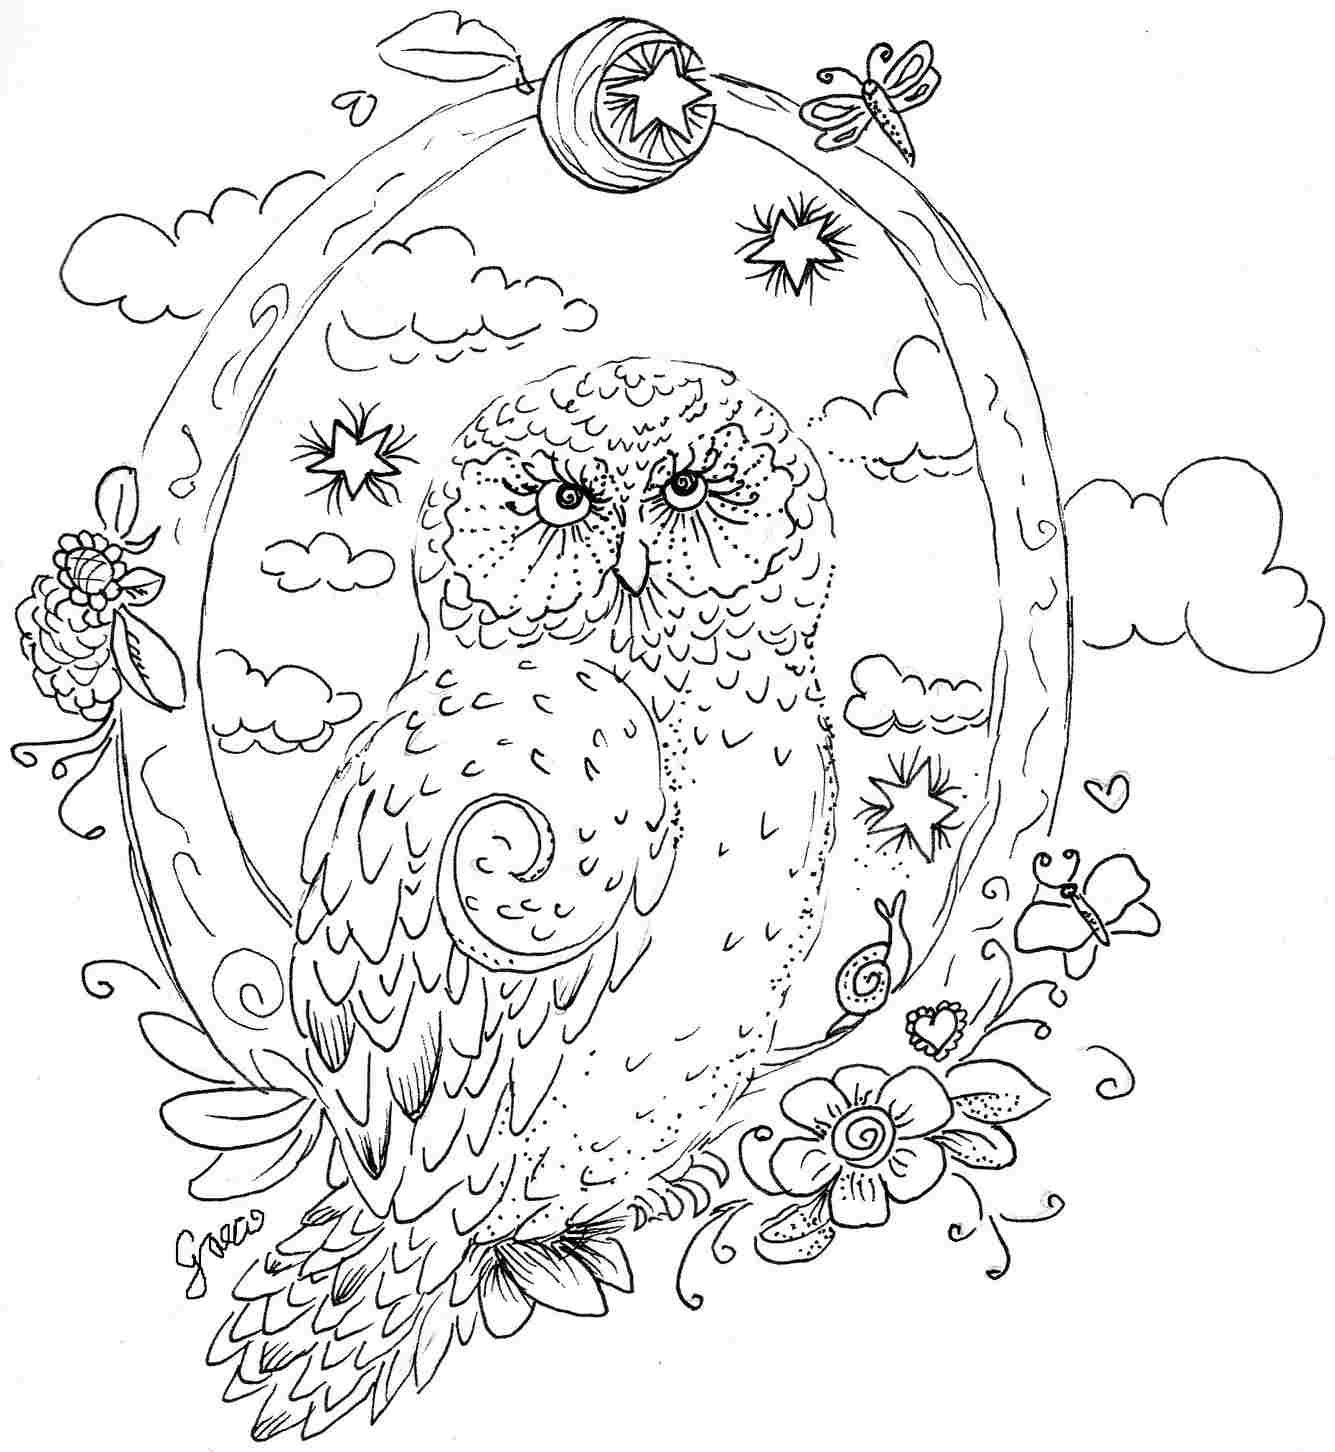 Pics For Gt Coloring Pages For Adults Difficult Owls